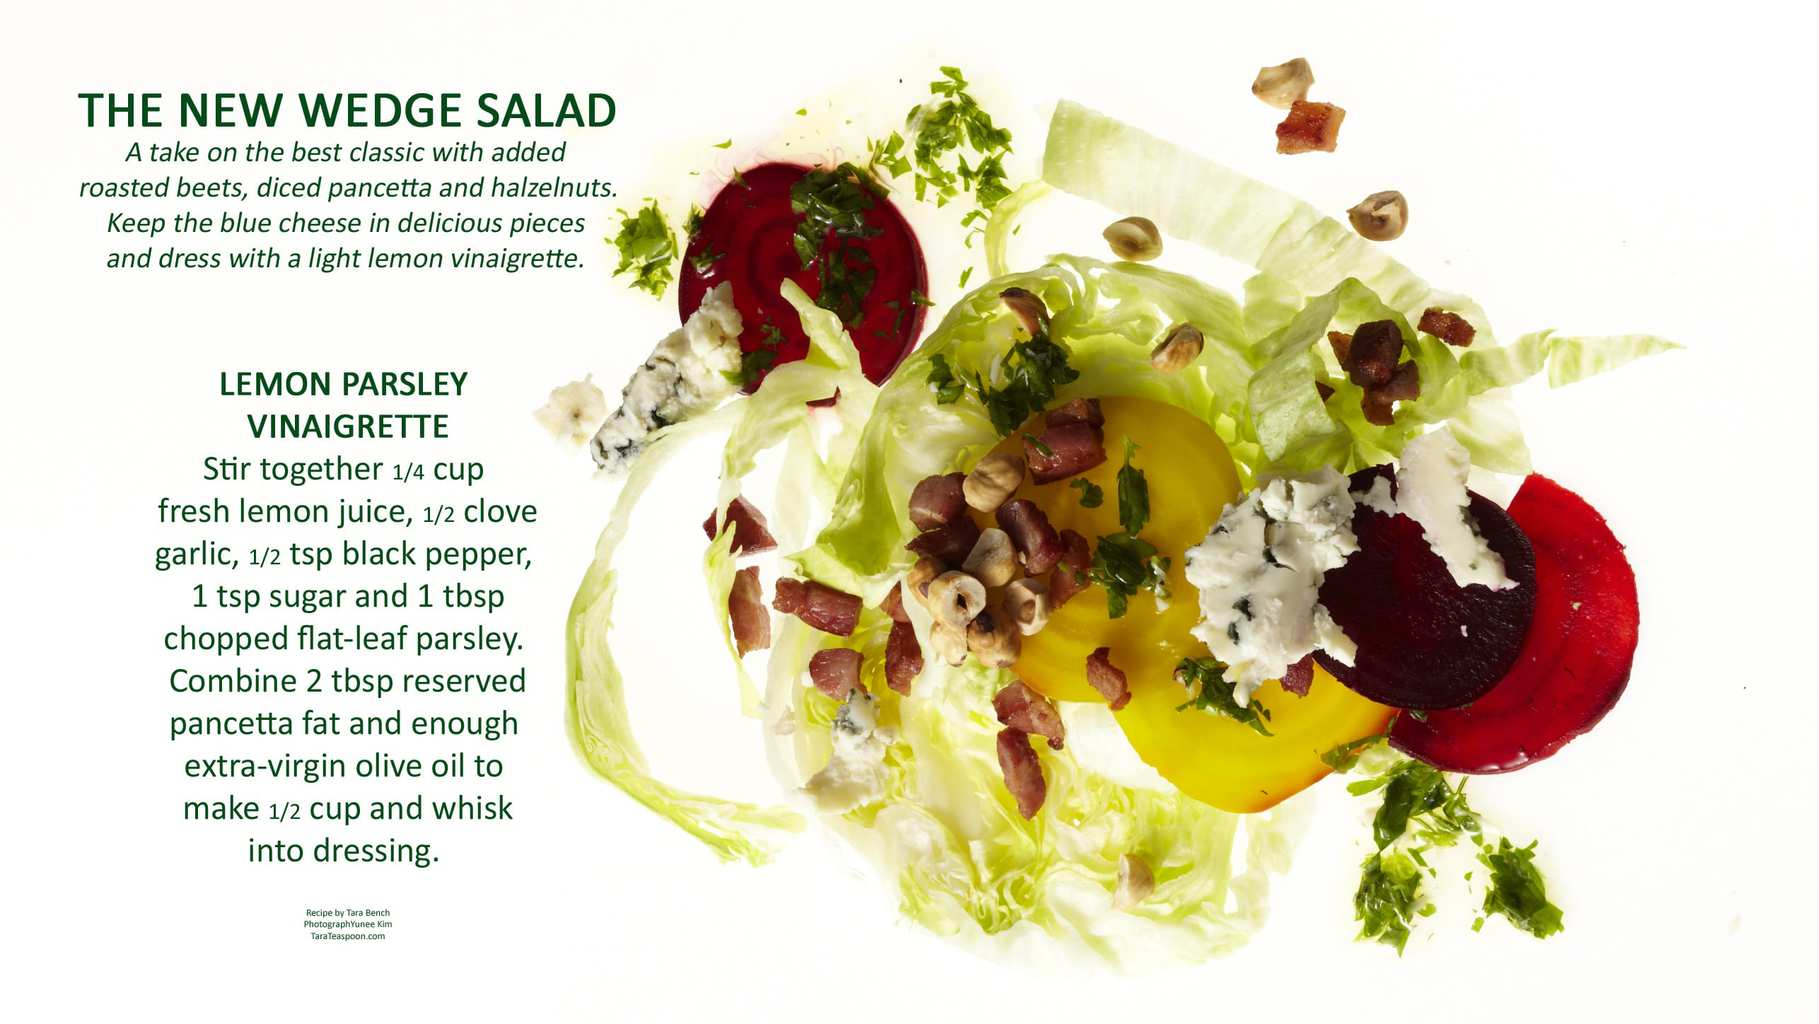 The New Wedge Salad with recipe